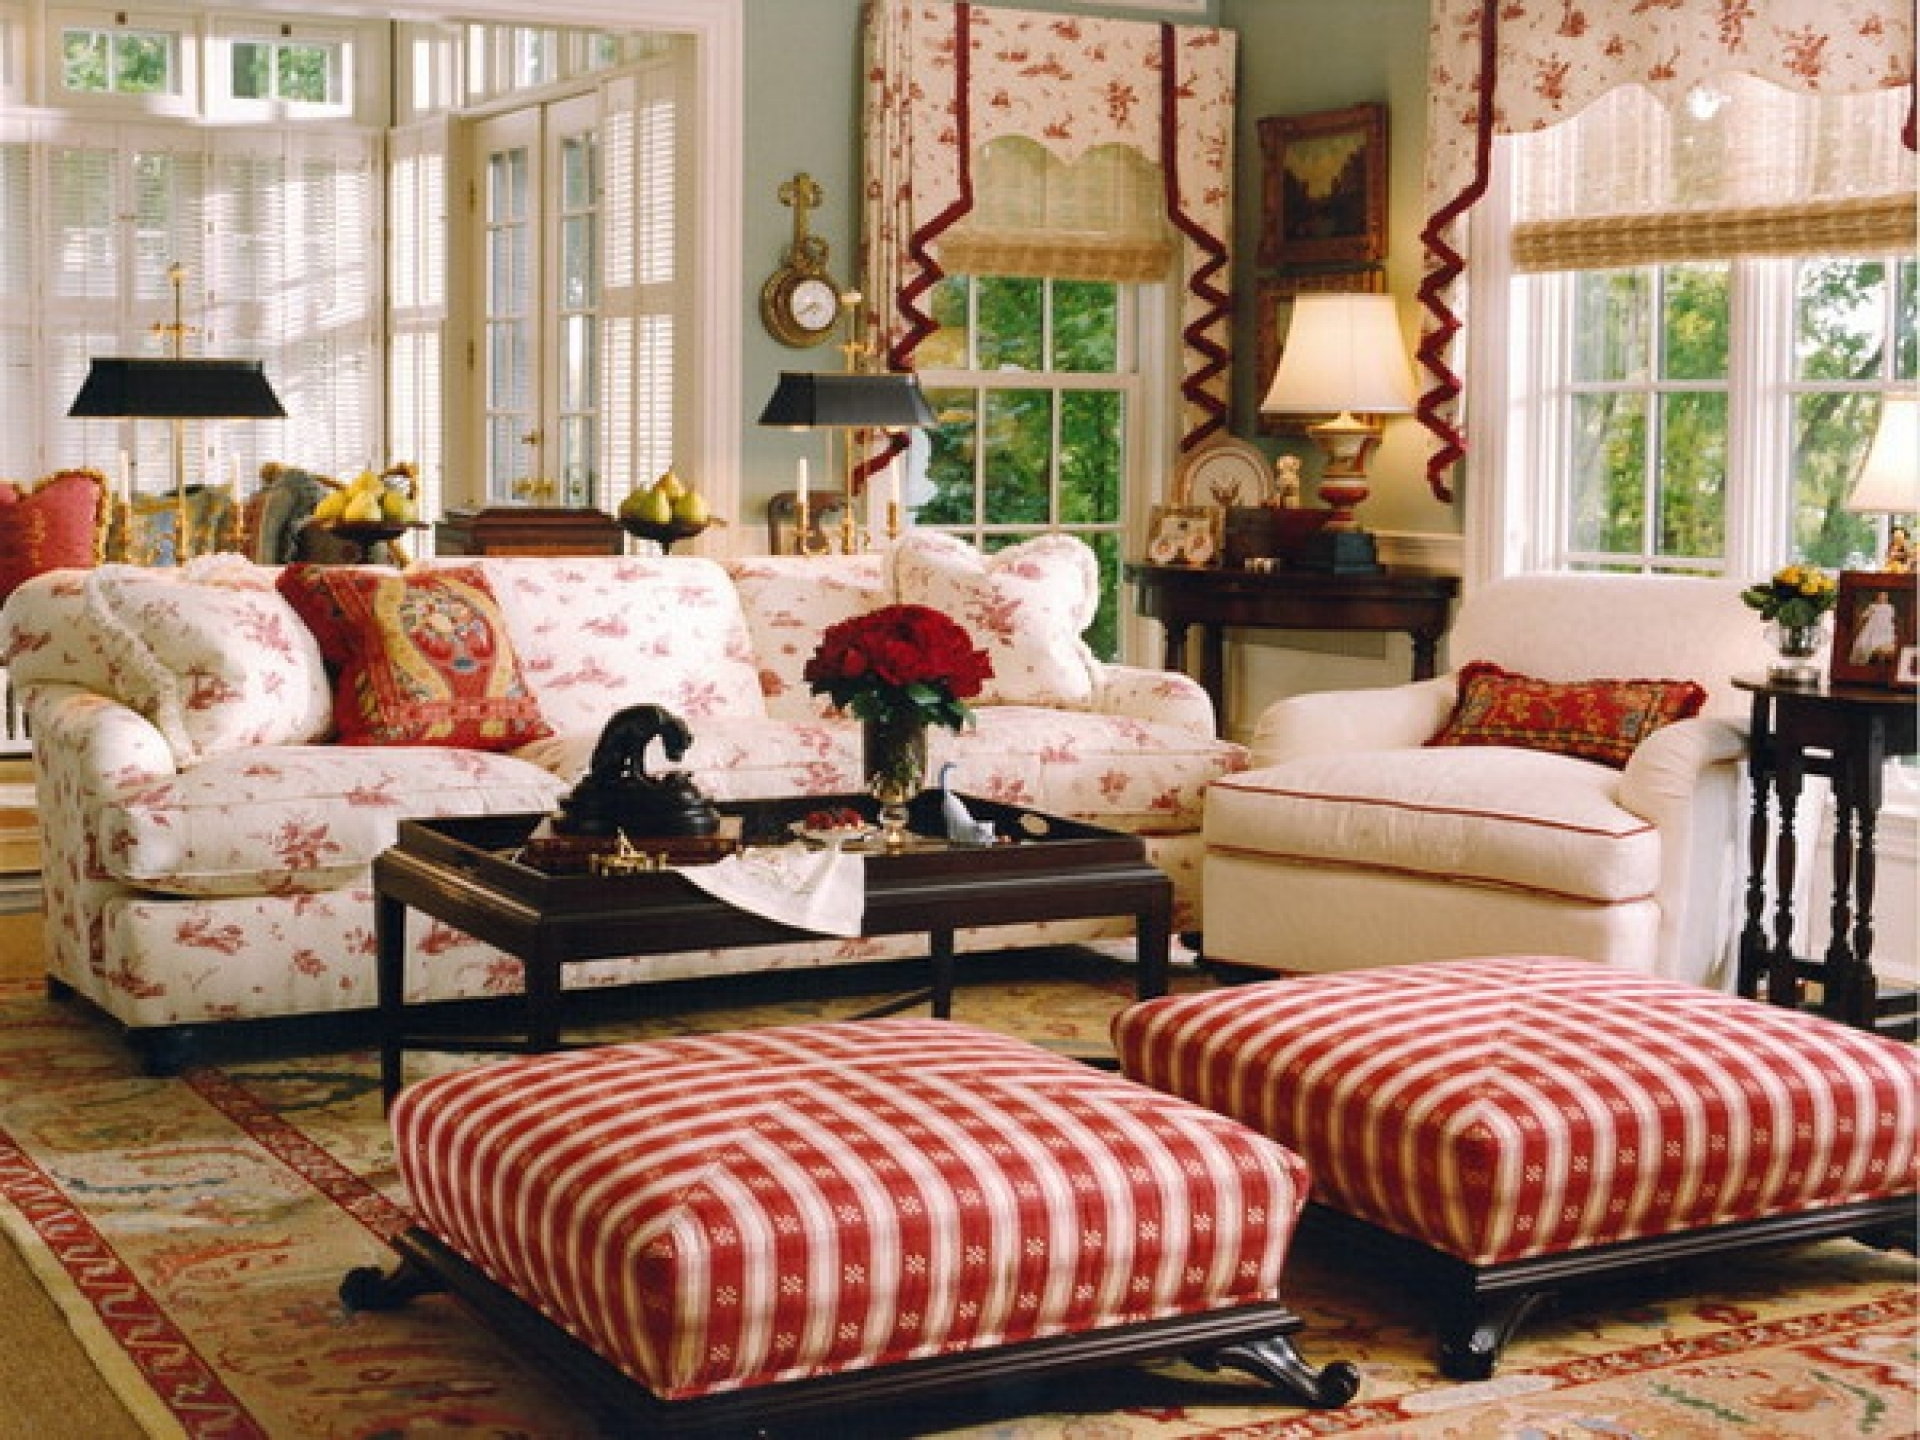 Fashionable Striped Sofas And Chairs Inside Attractive English Country Living Room Ideas Square Red Striped (View 11 of 15)